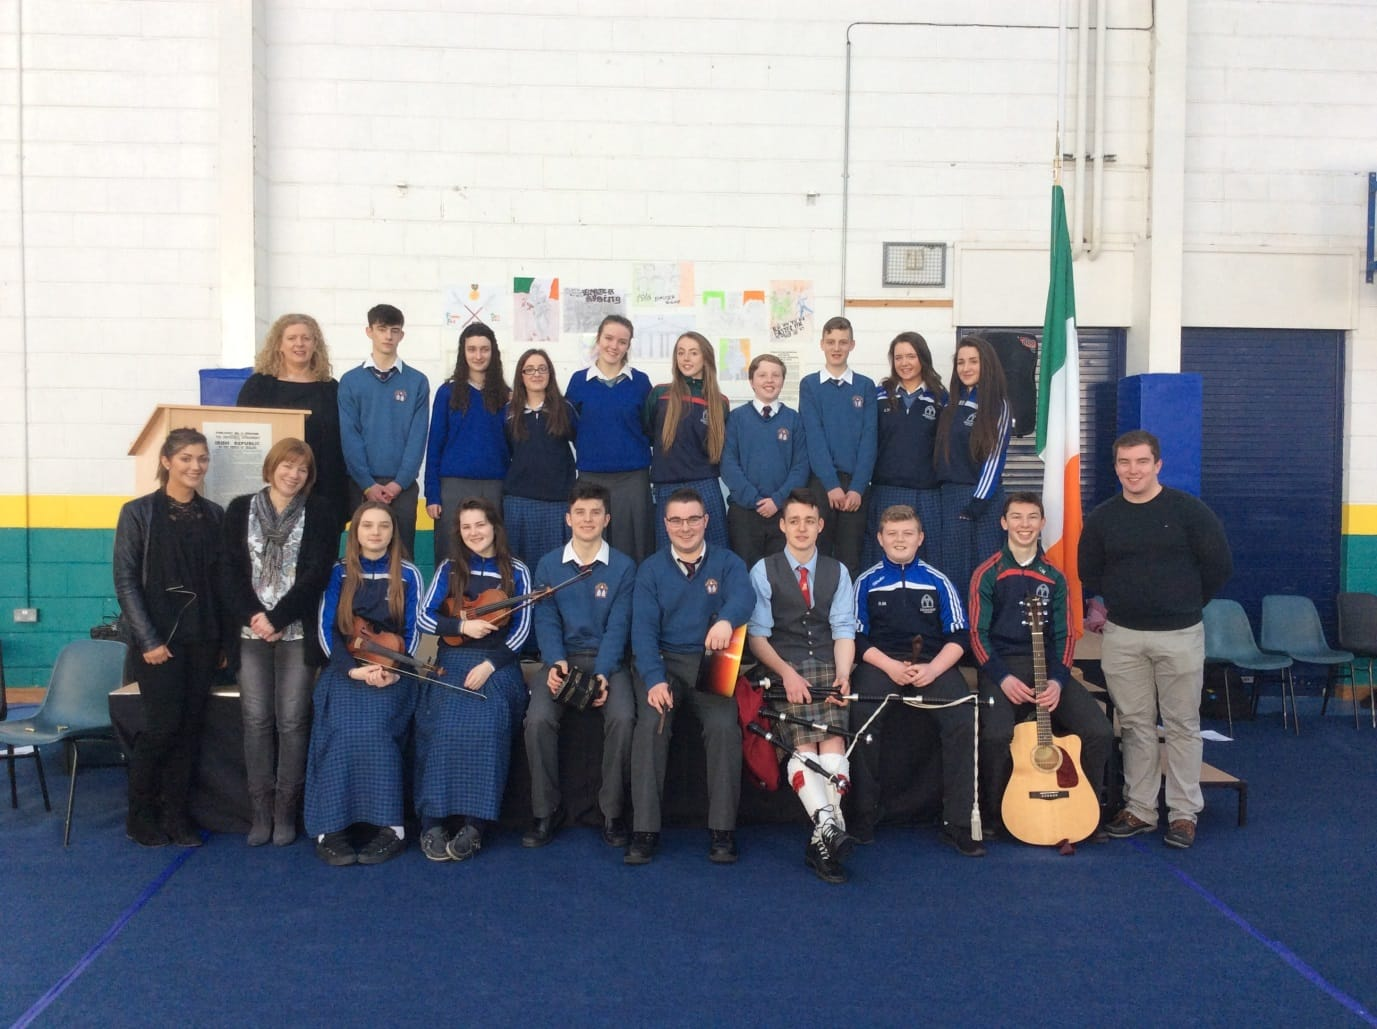 March 2016: Students and staff that performed at the 1916 commemoration ceremony in Desmond College pictured with school principal Ms. Gavin-Barry